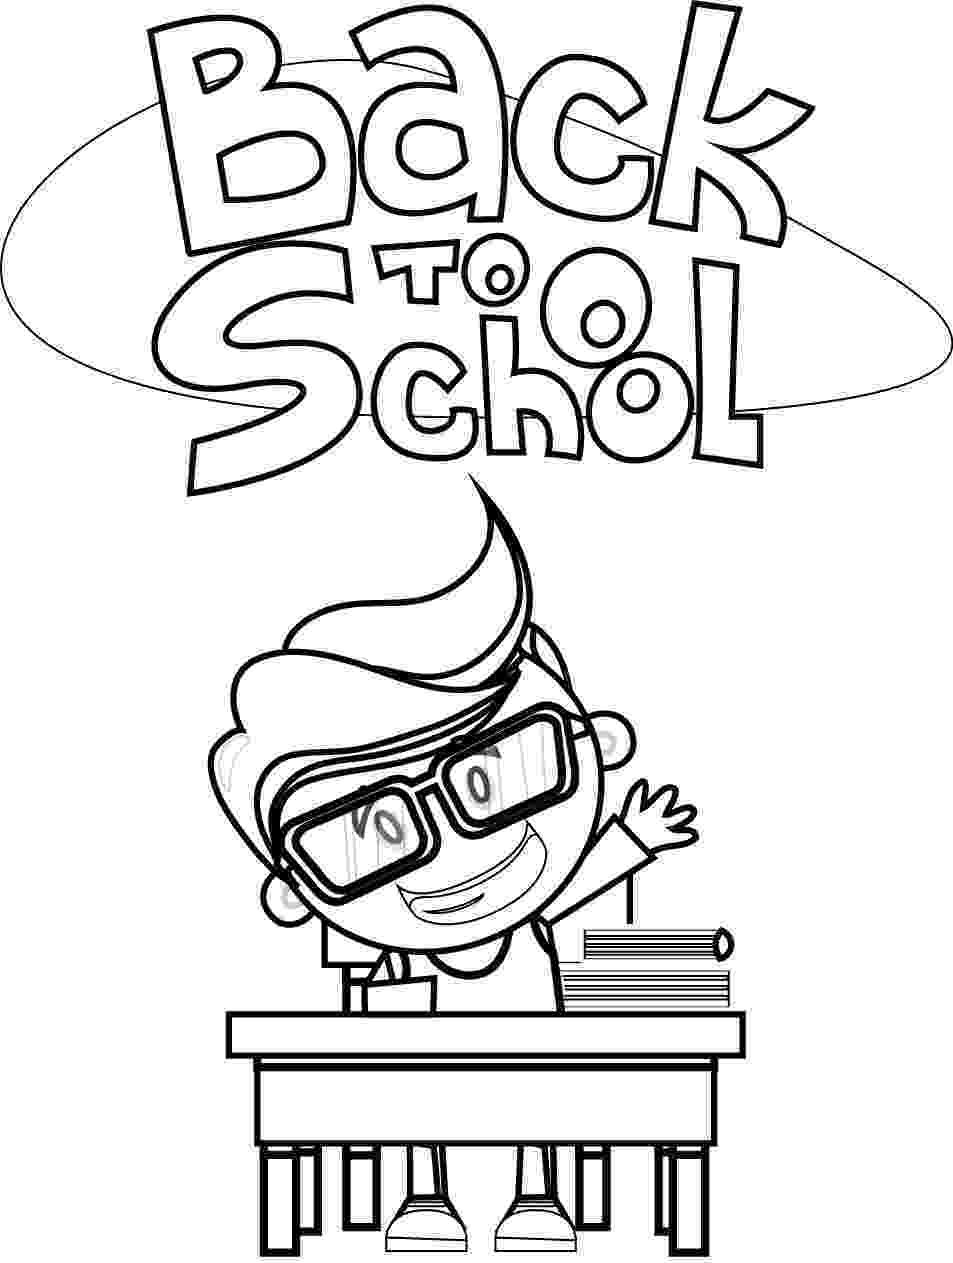 student coloring page english teacher student coloring page wecoloringpagecom student coloring page